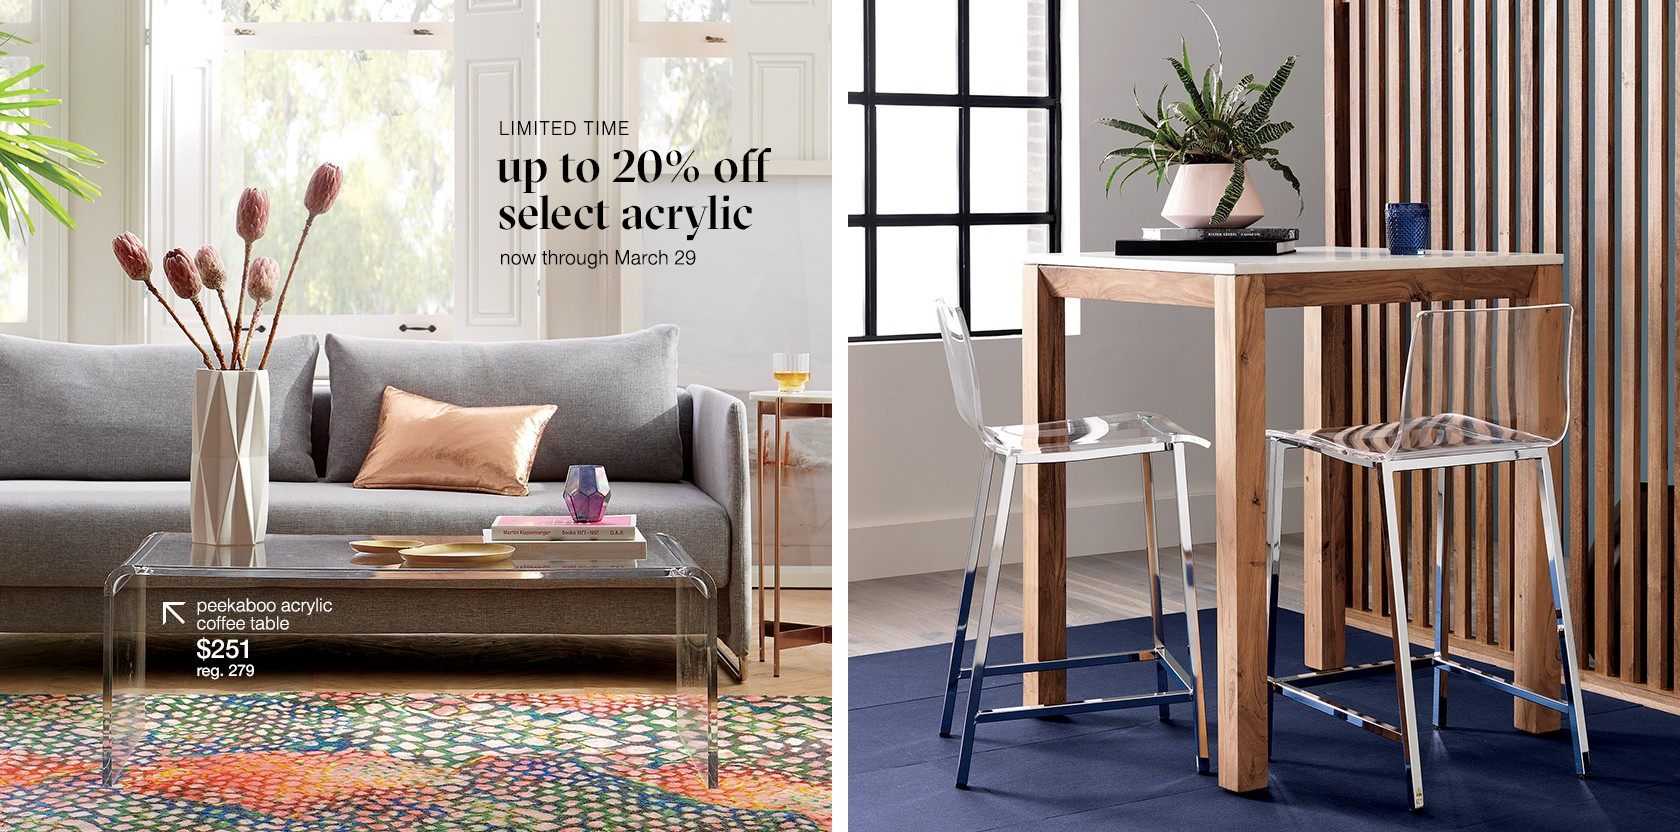 up to 20% off select acrylic